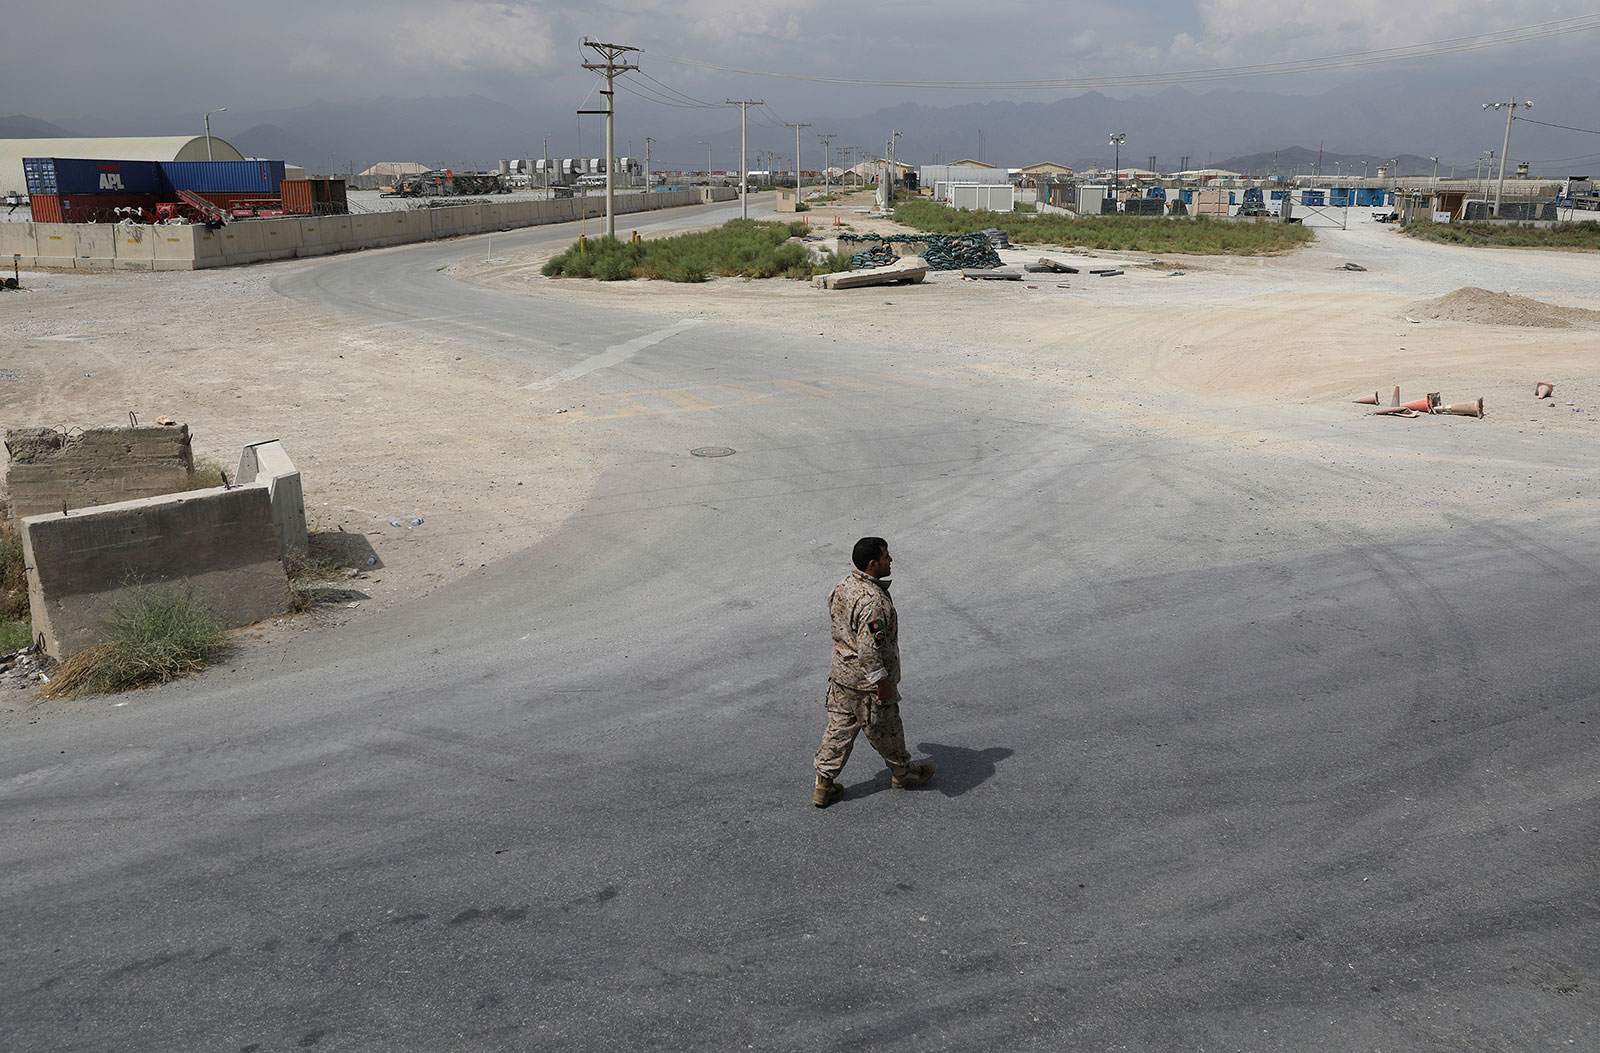 A member of Afghanistan's security forces walks at Bagram Air Base after the last American troopsdeparted the compoundin July 2021.